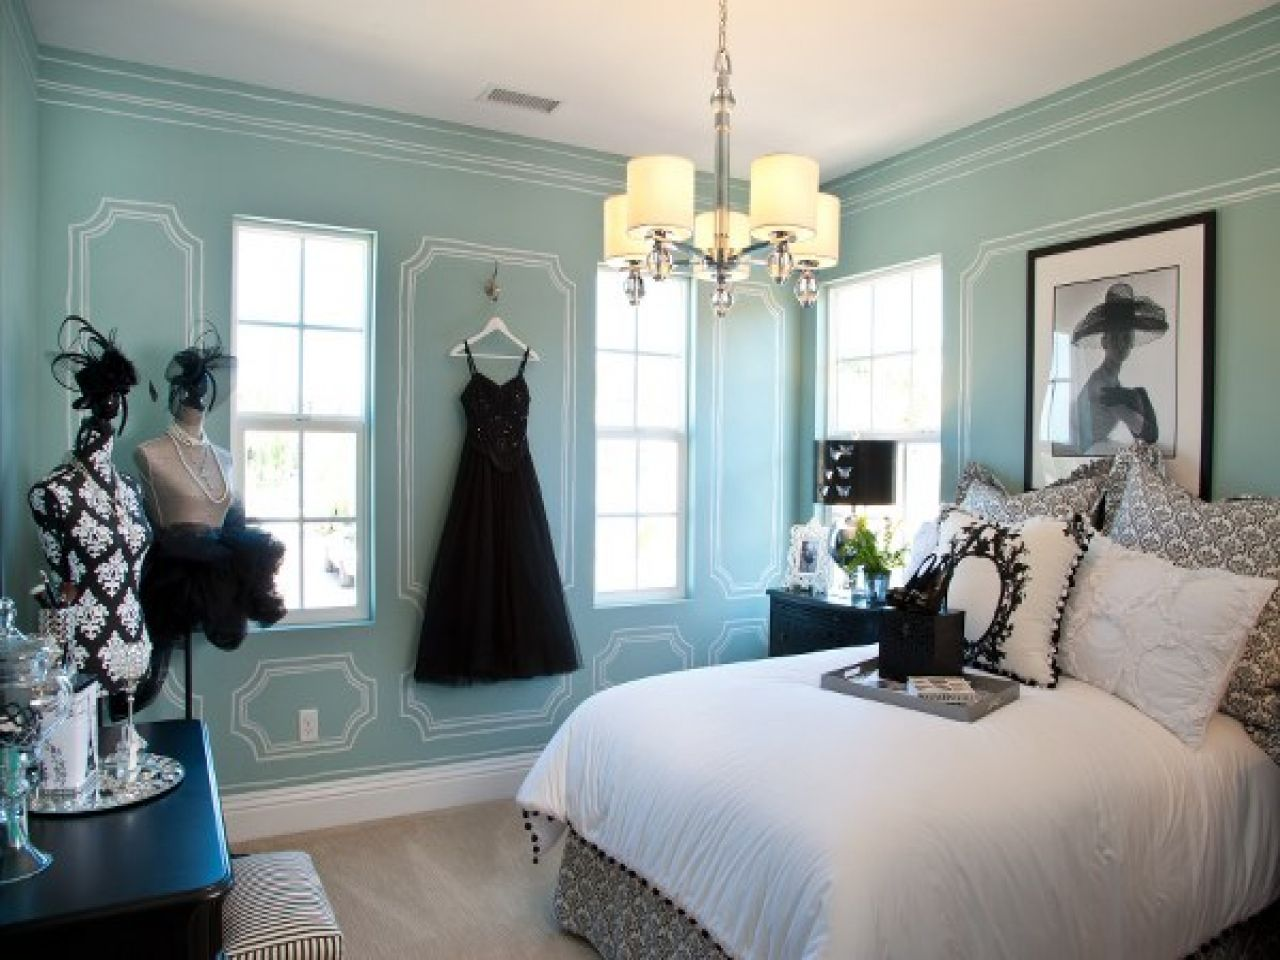 Paris Themed Bedroom Decorating Ideas Part - 25: Bedroom Decorations For Teenage Girls Fashion Theme Blue Wall Color Modern  Chandelier